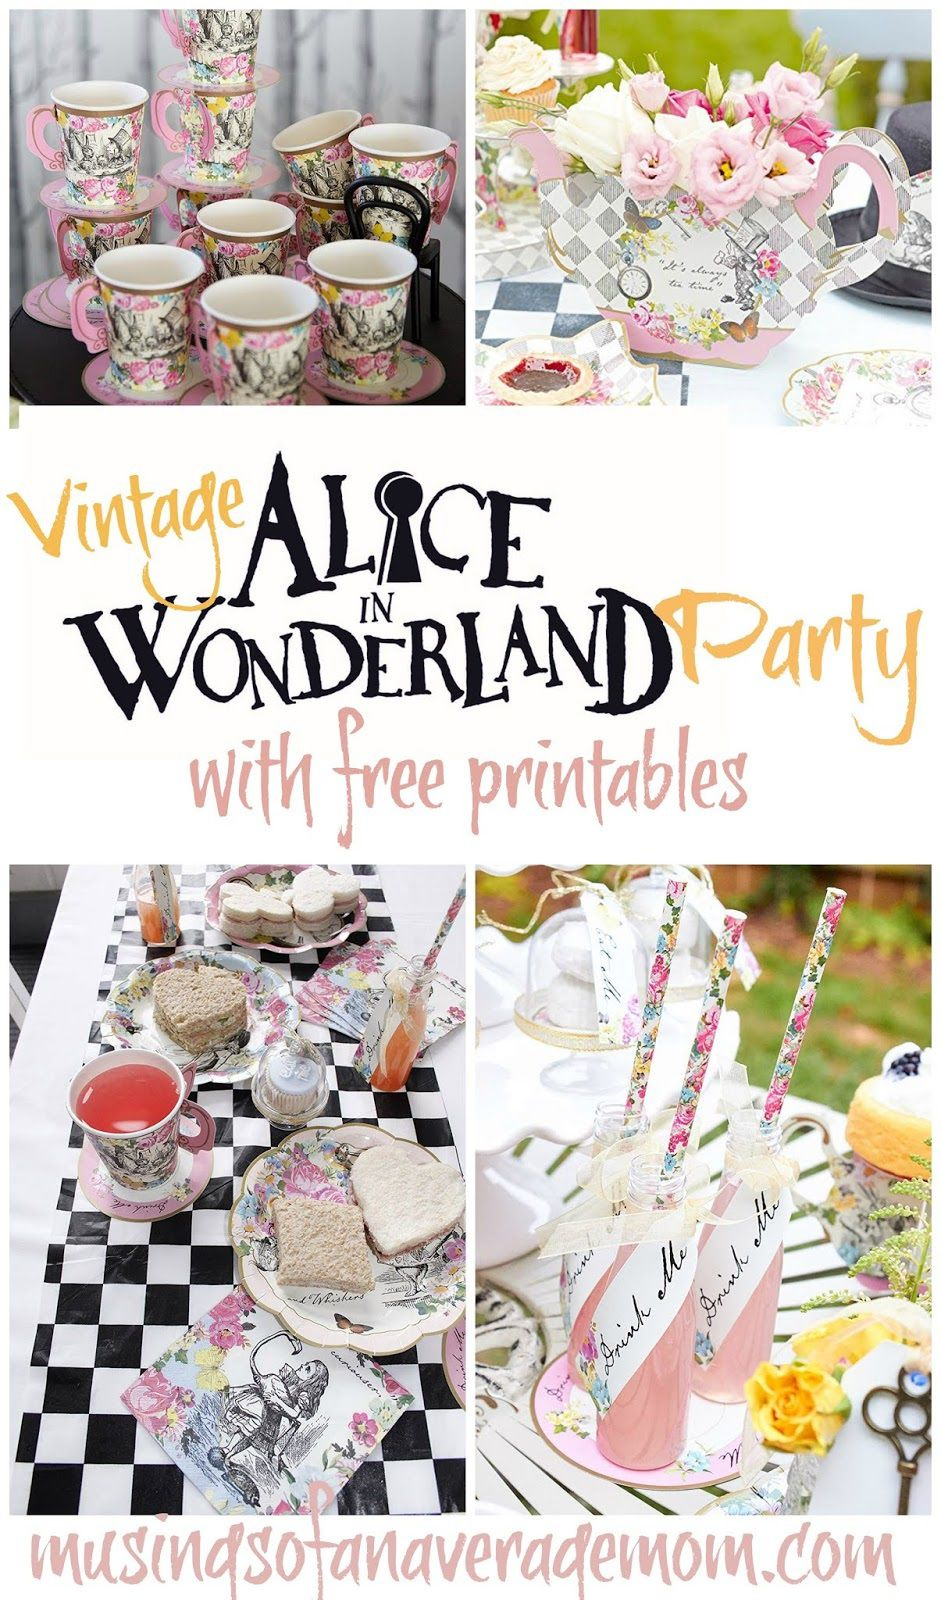 008 Wonderful Alice In Wonderland Party Template Picture  Templates Invitation FreeFull